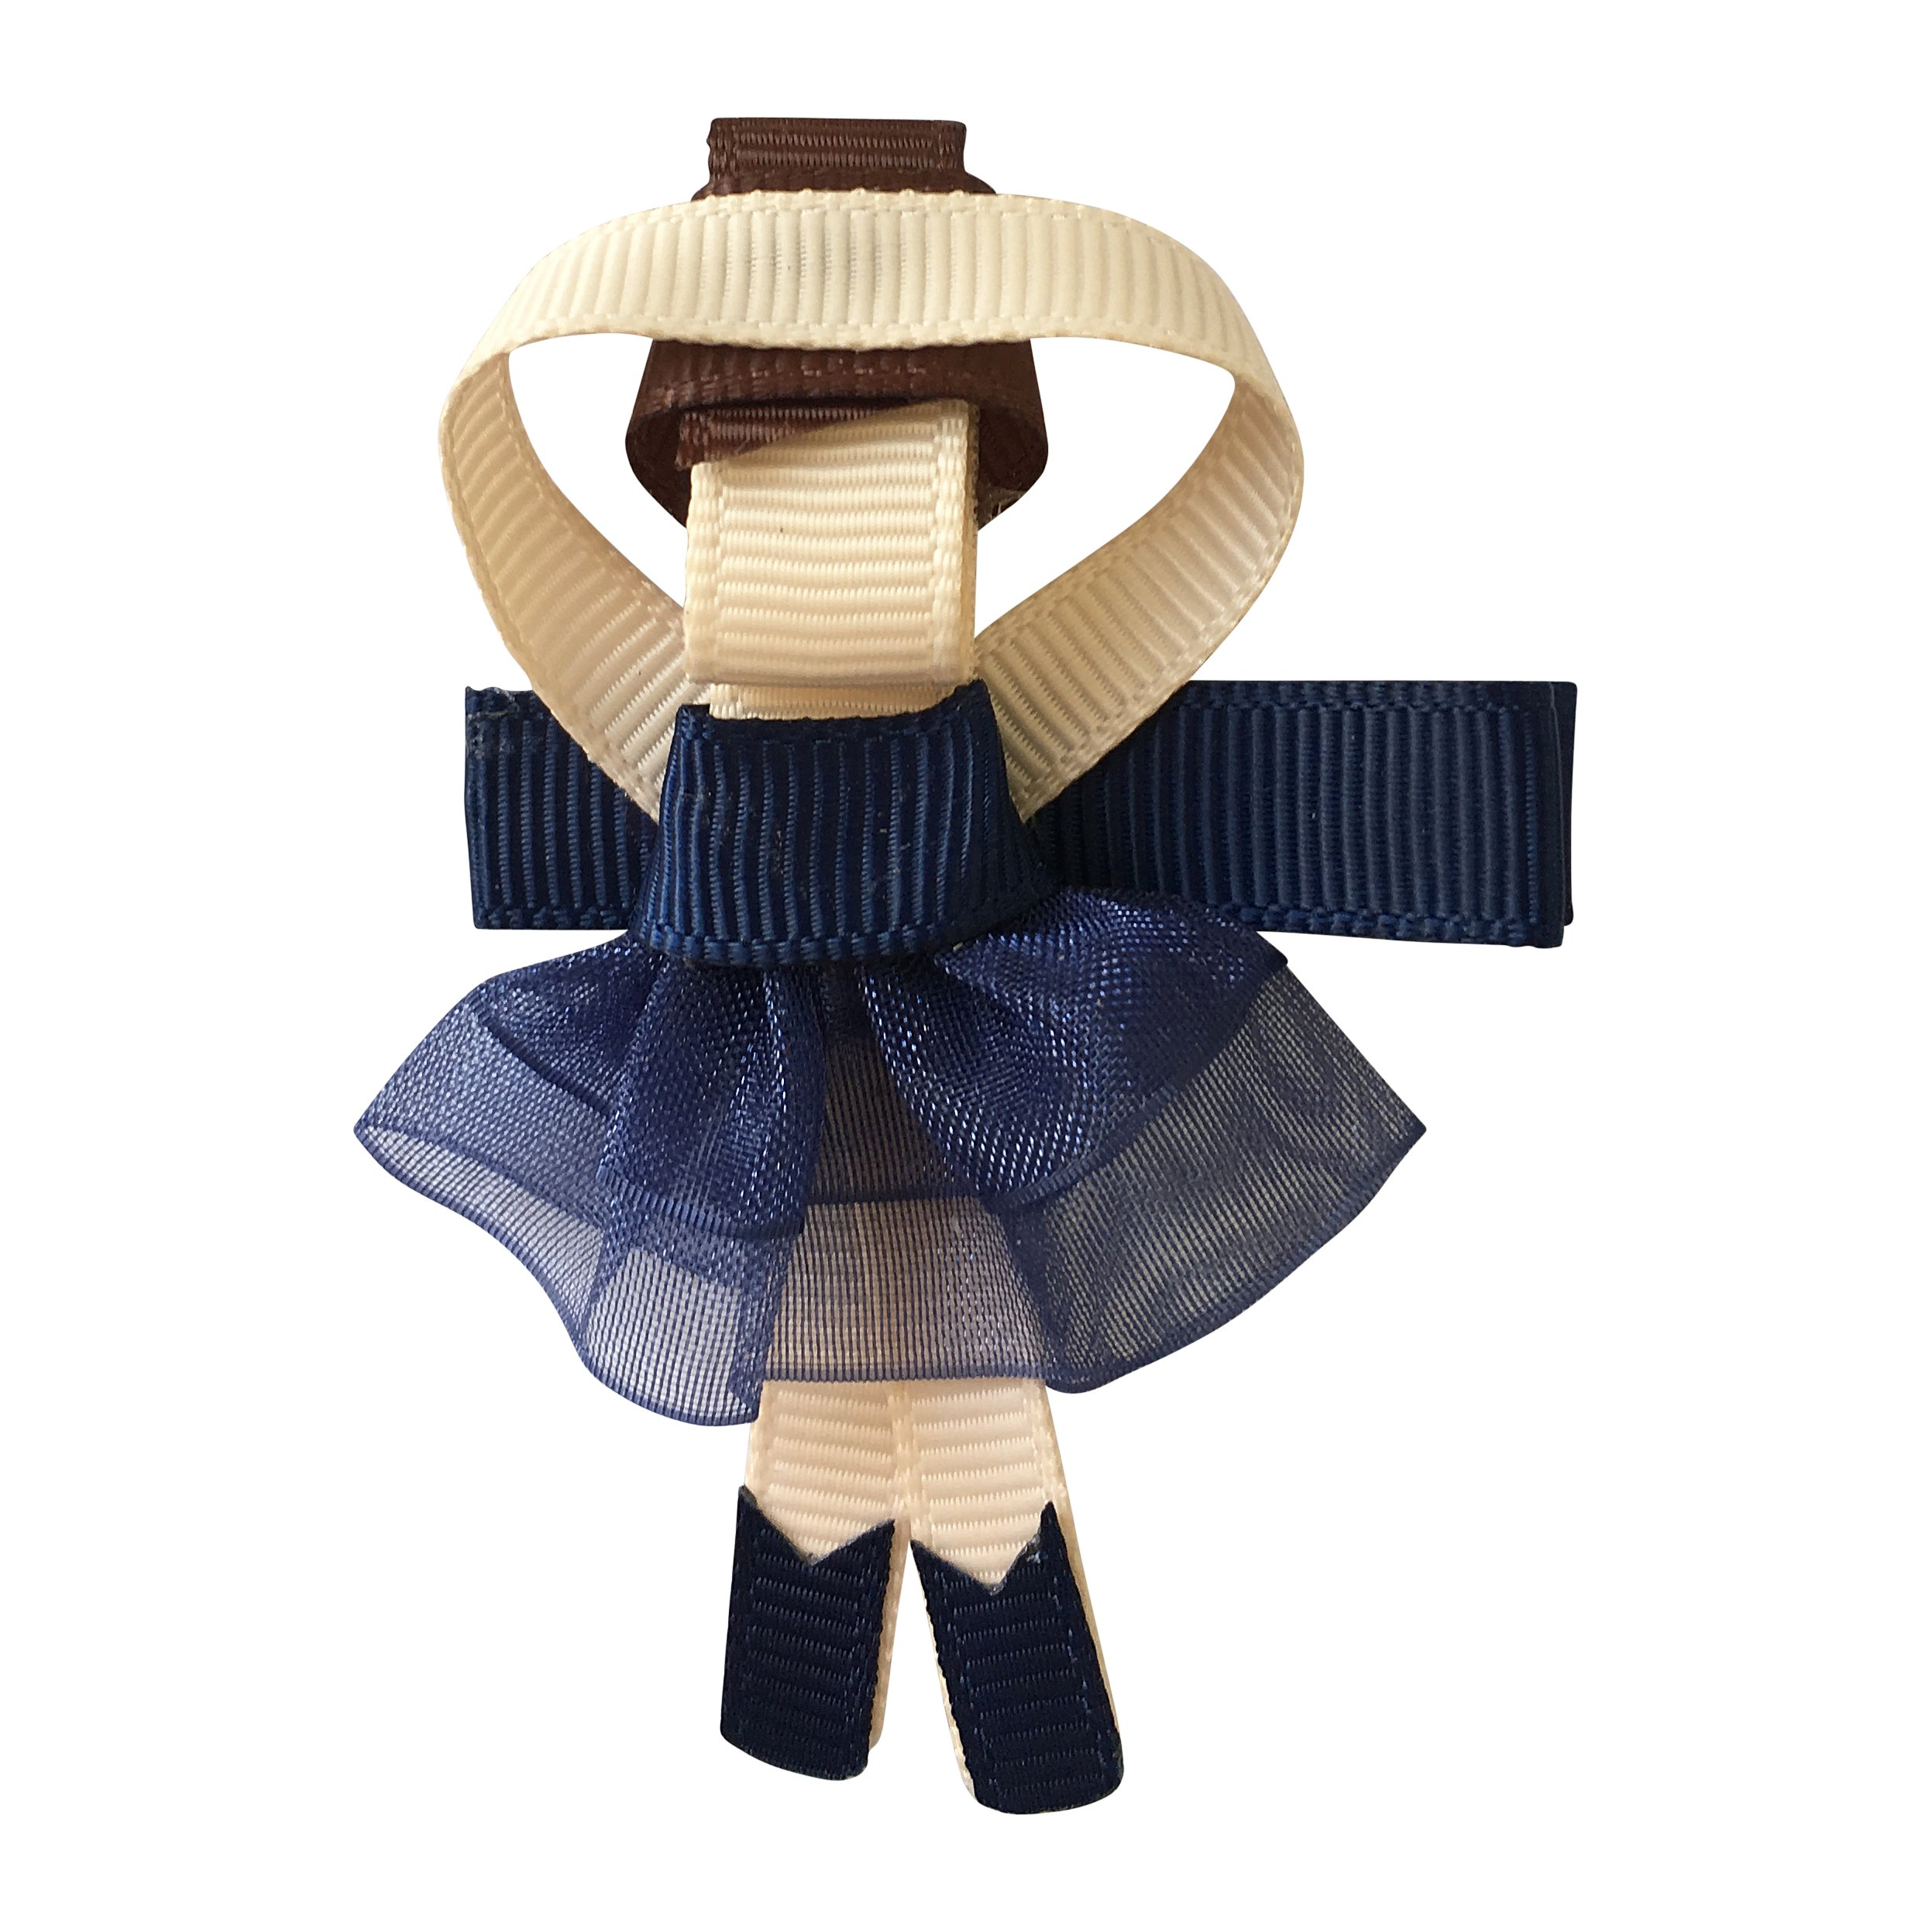 Image of Milledeux Ballerina - alligator clip - Navy